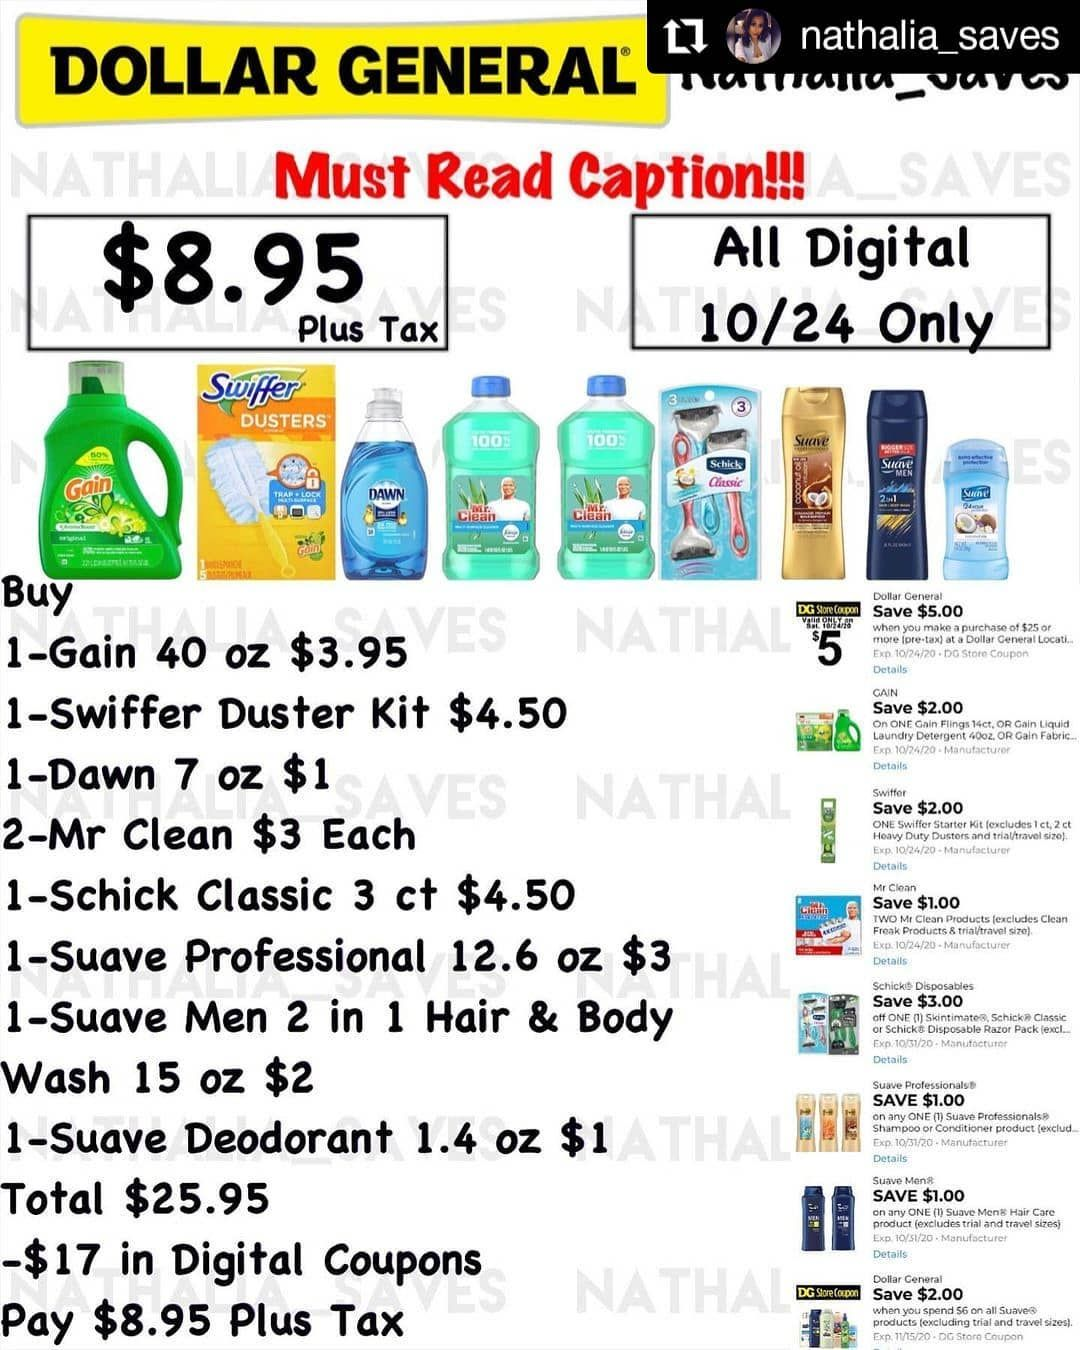 Amanda Coupon Deal Hunter On Instagram Repost Nathalia Saves Dollar General Do What Works For Digital Coupons Dollar General Coupon Deals